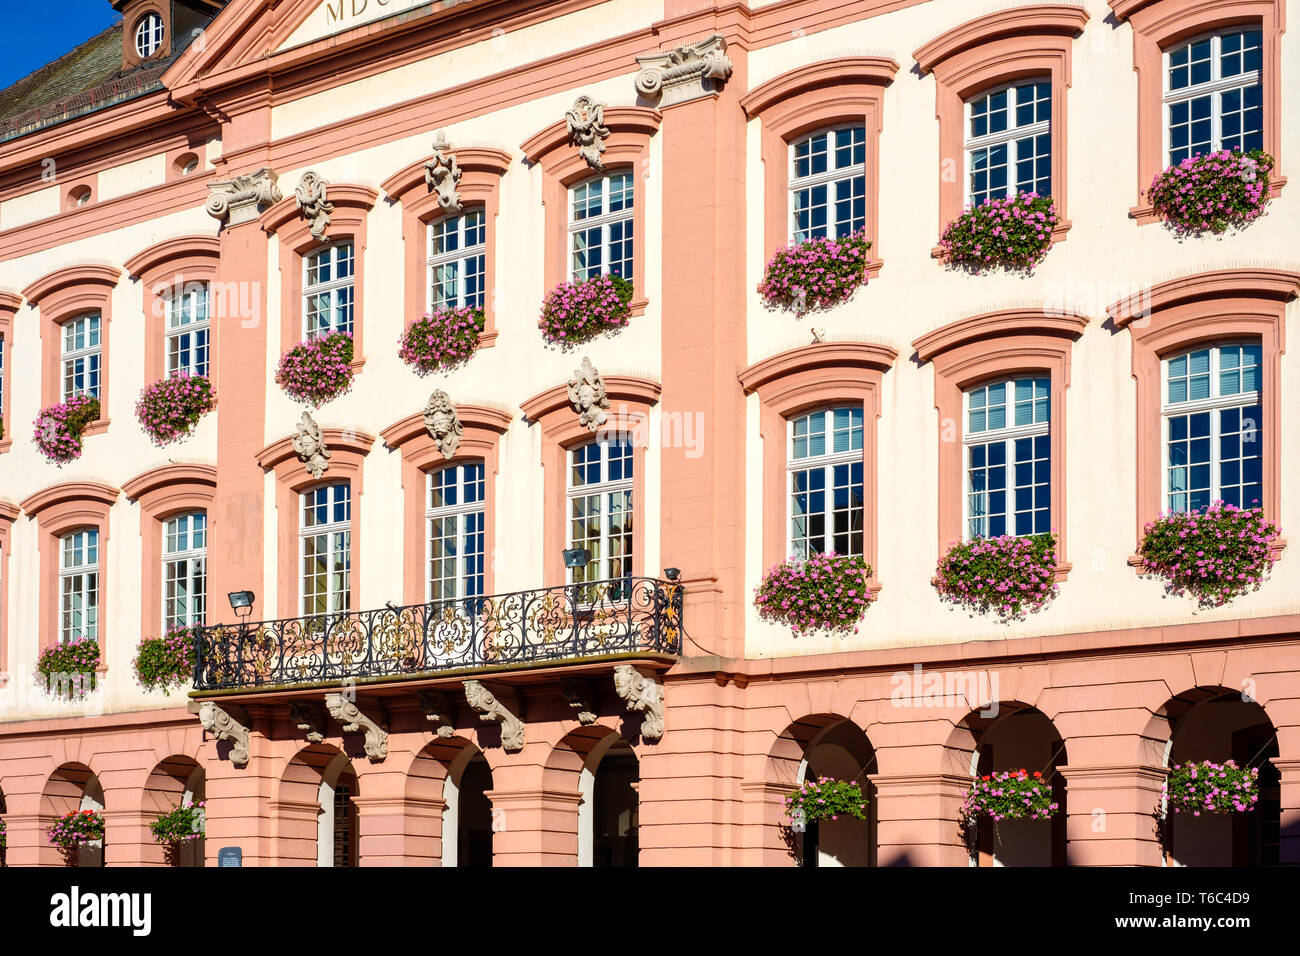 Stadt Gengenbach town hall, Gengenbach, Baden-Württemberg, Germany - Stock Image